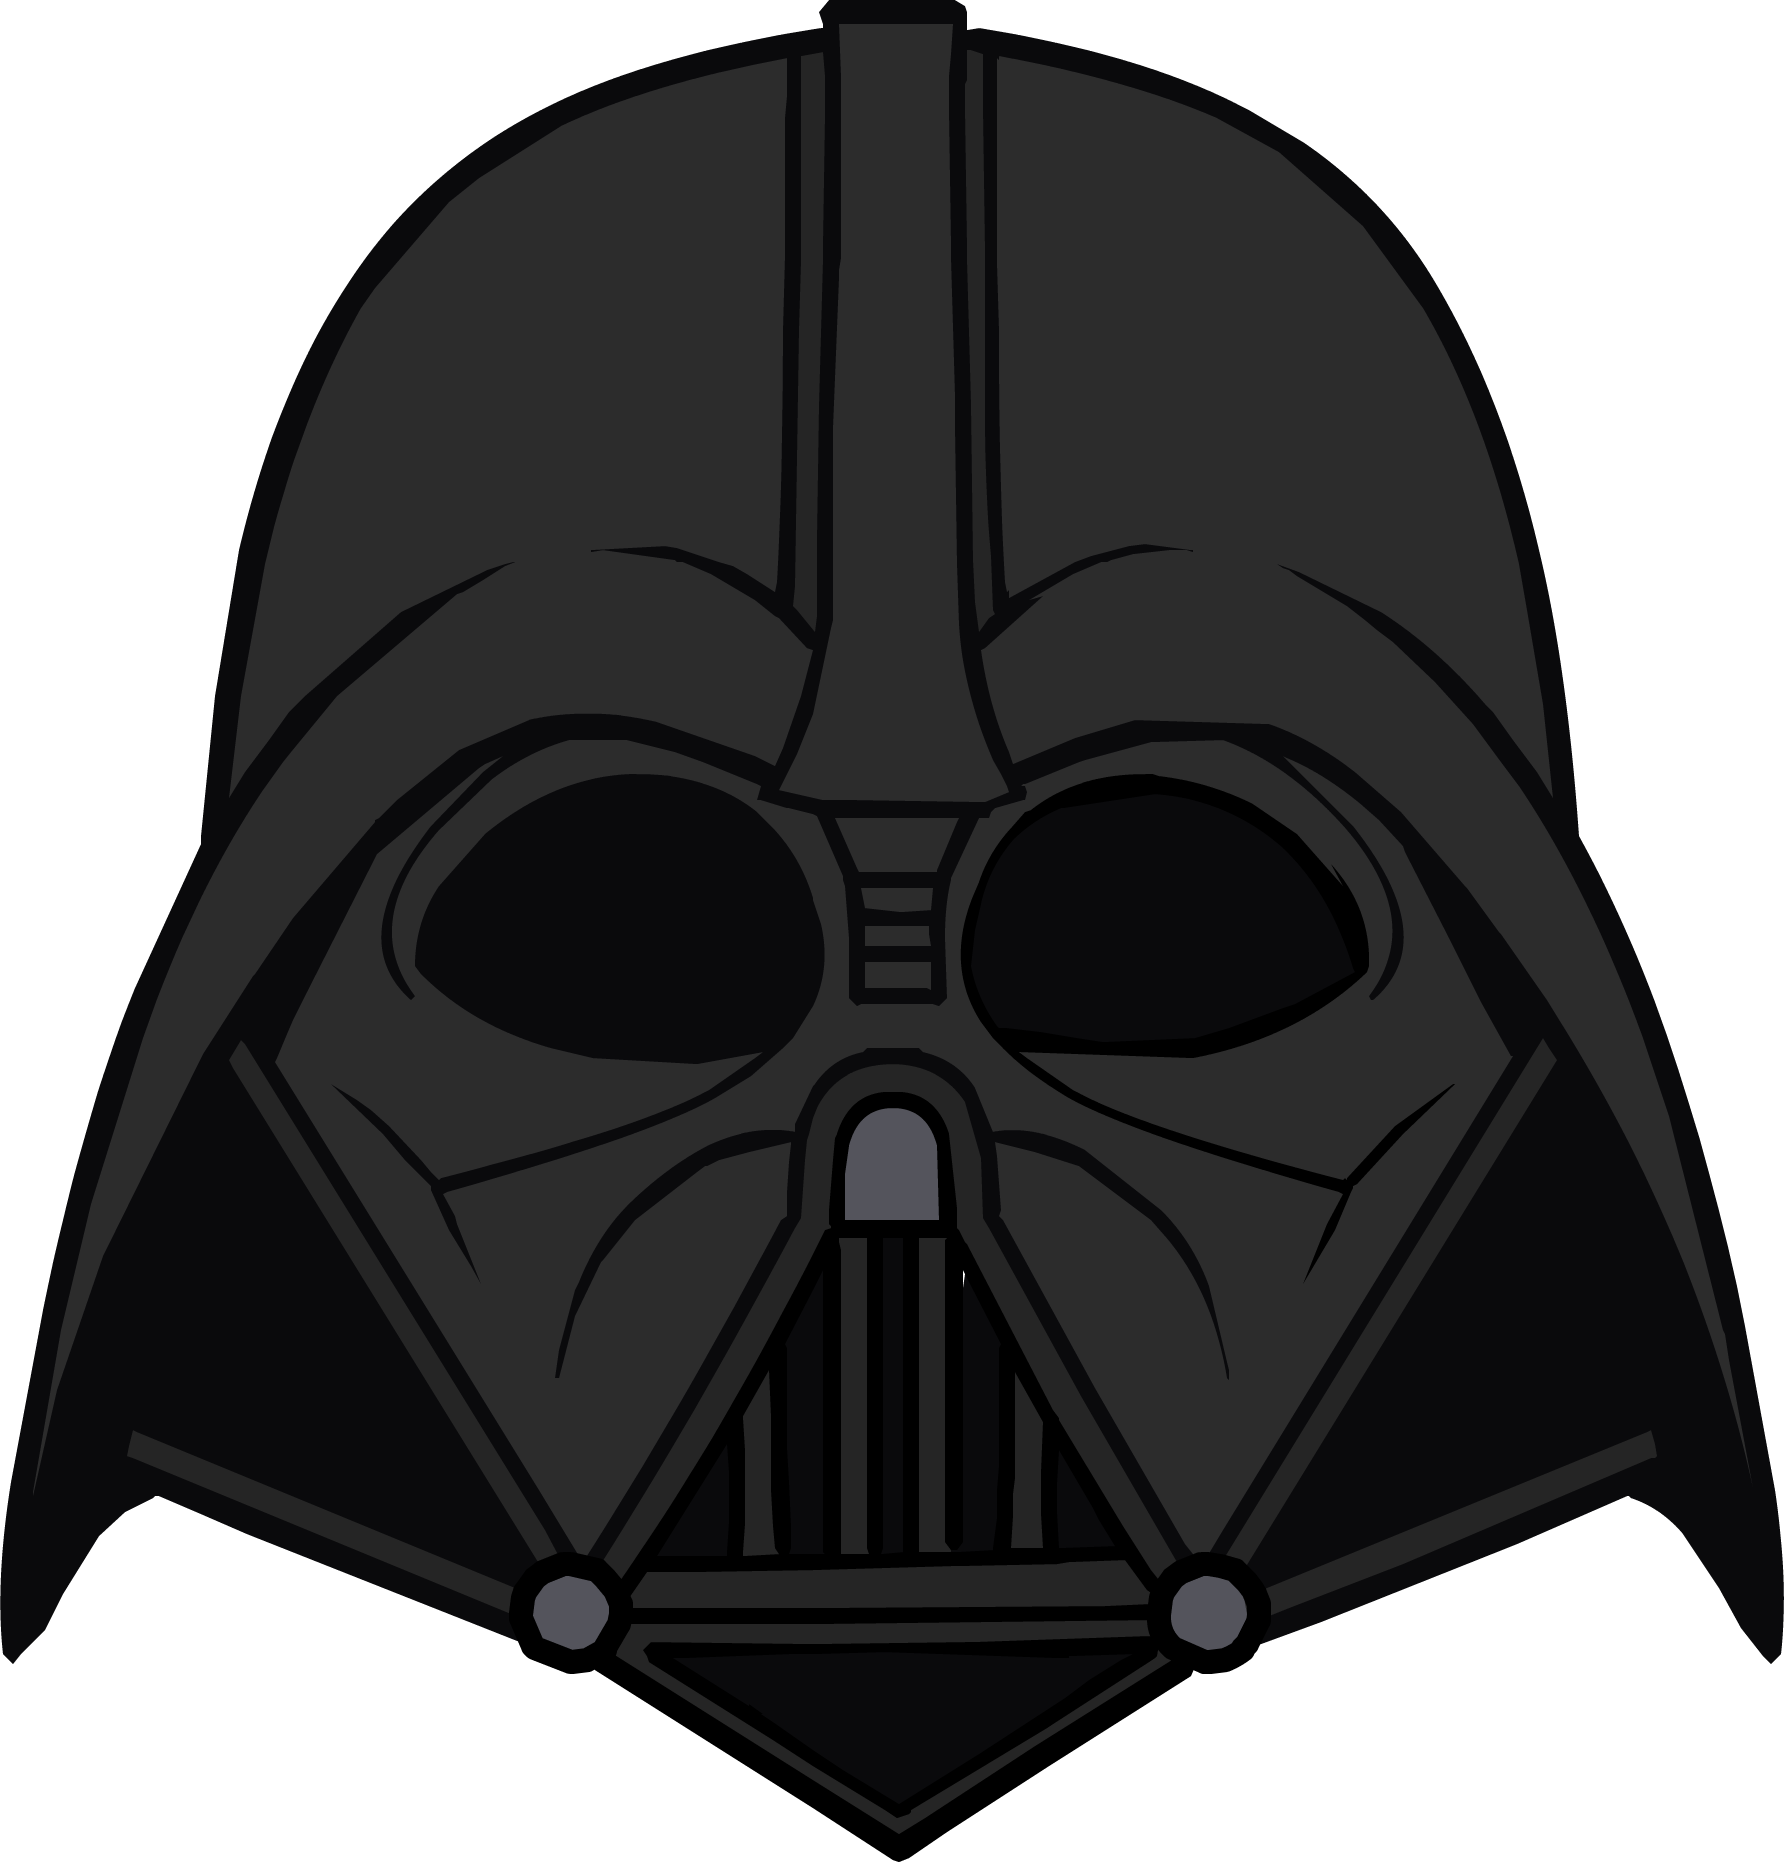 Darth vader head png. Helmet club penguin wiki